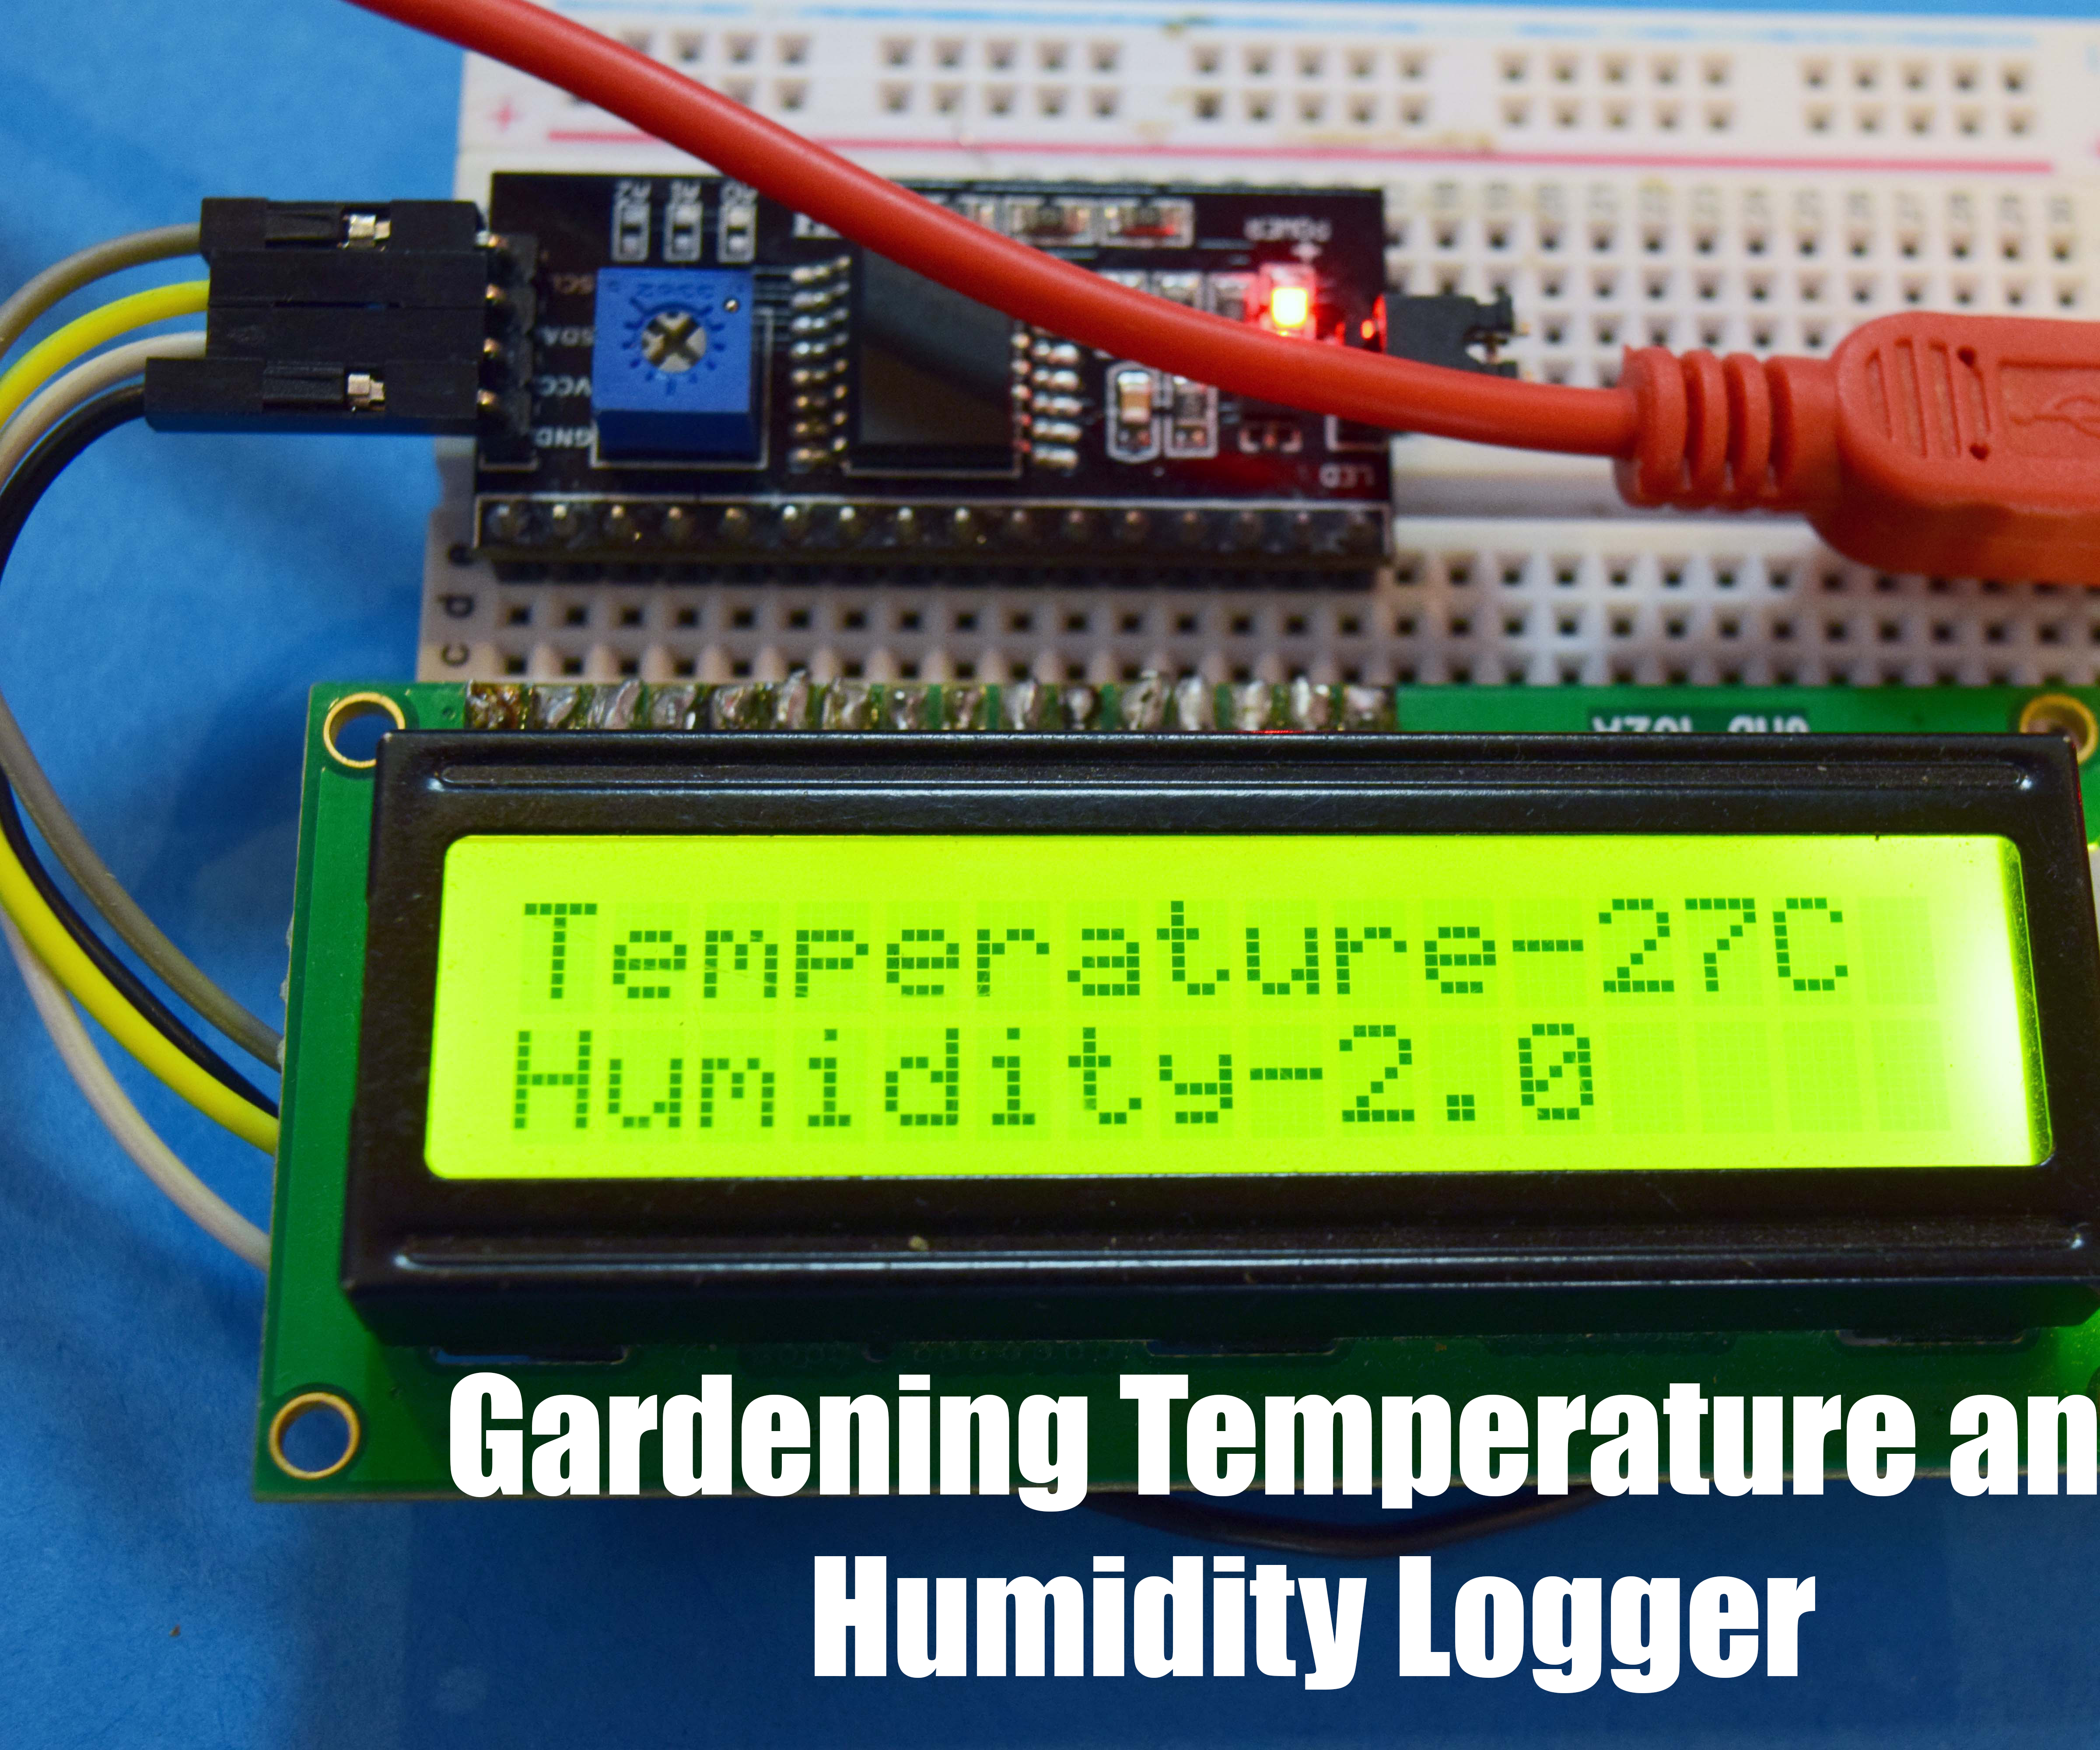 Gardening Temperature and Humidity Logger